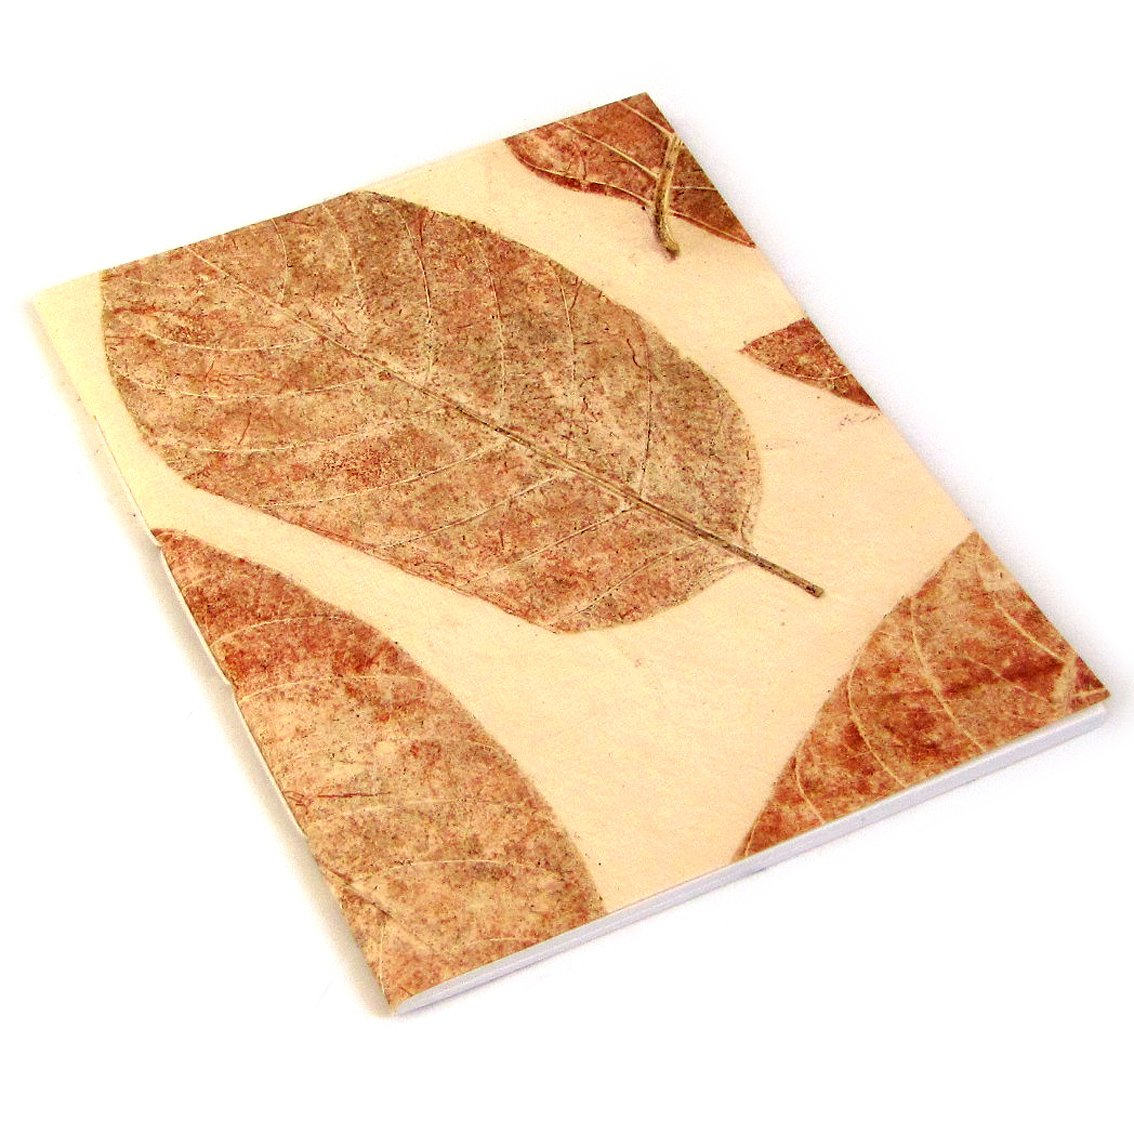 Scrapping guest book journal handmade recycled cream leaf paper blank notebook journaling 7x8 50pp